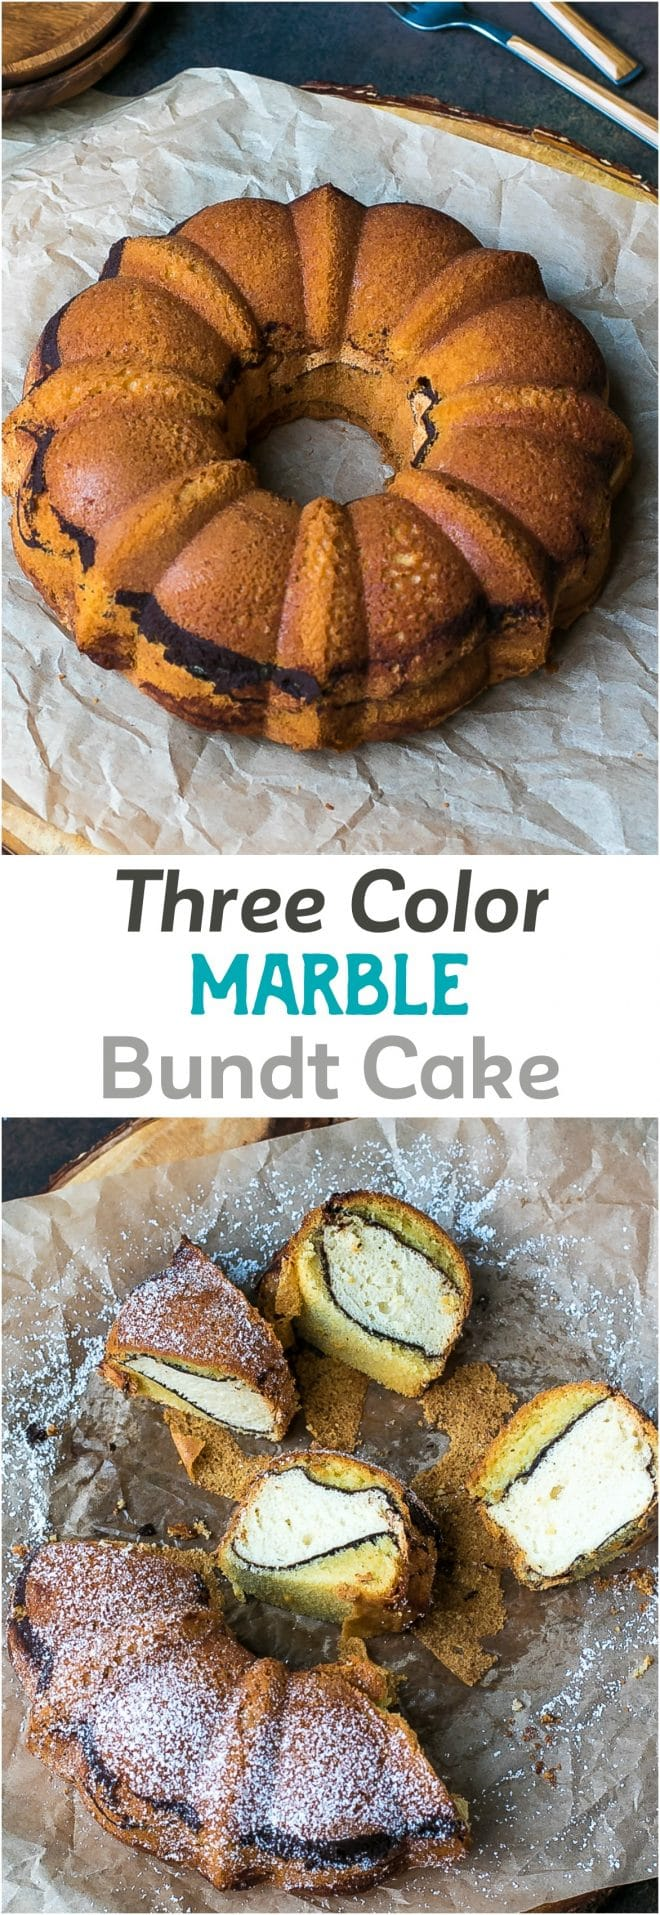 Three Color Marble Bundt Cake Recipe Cooking Lsl